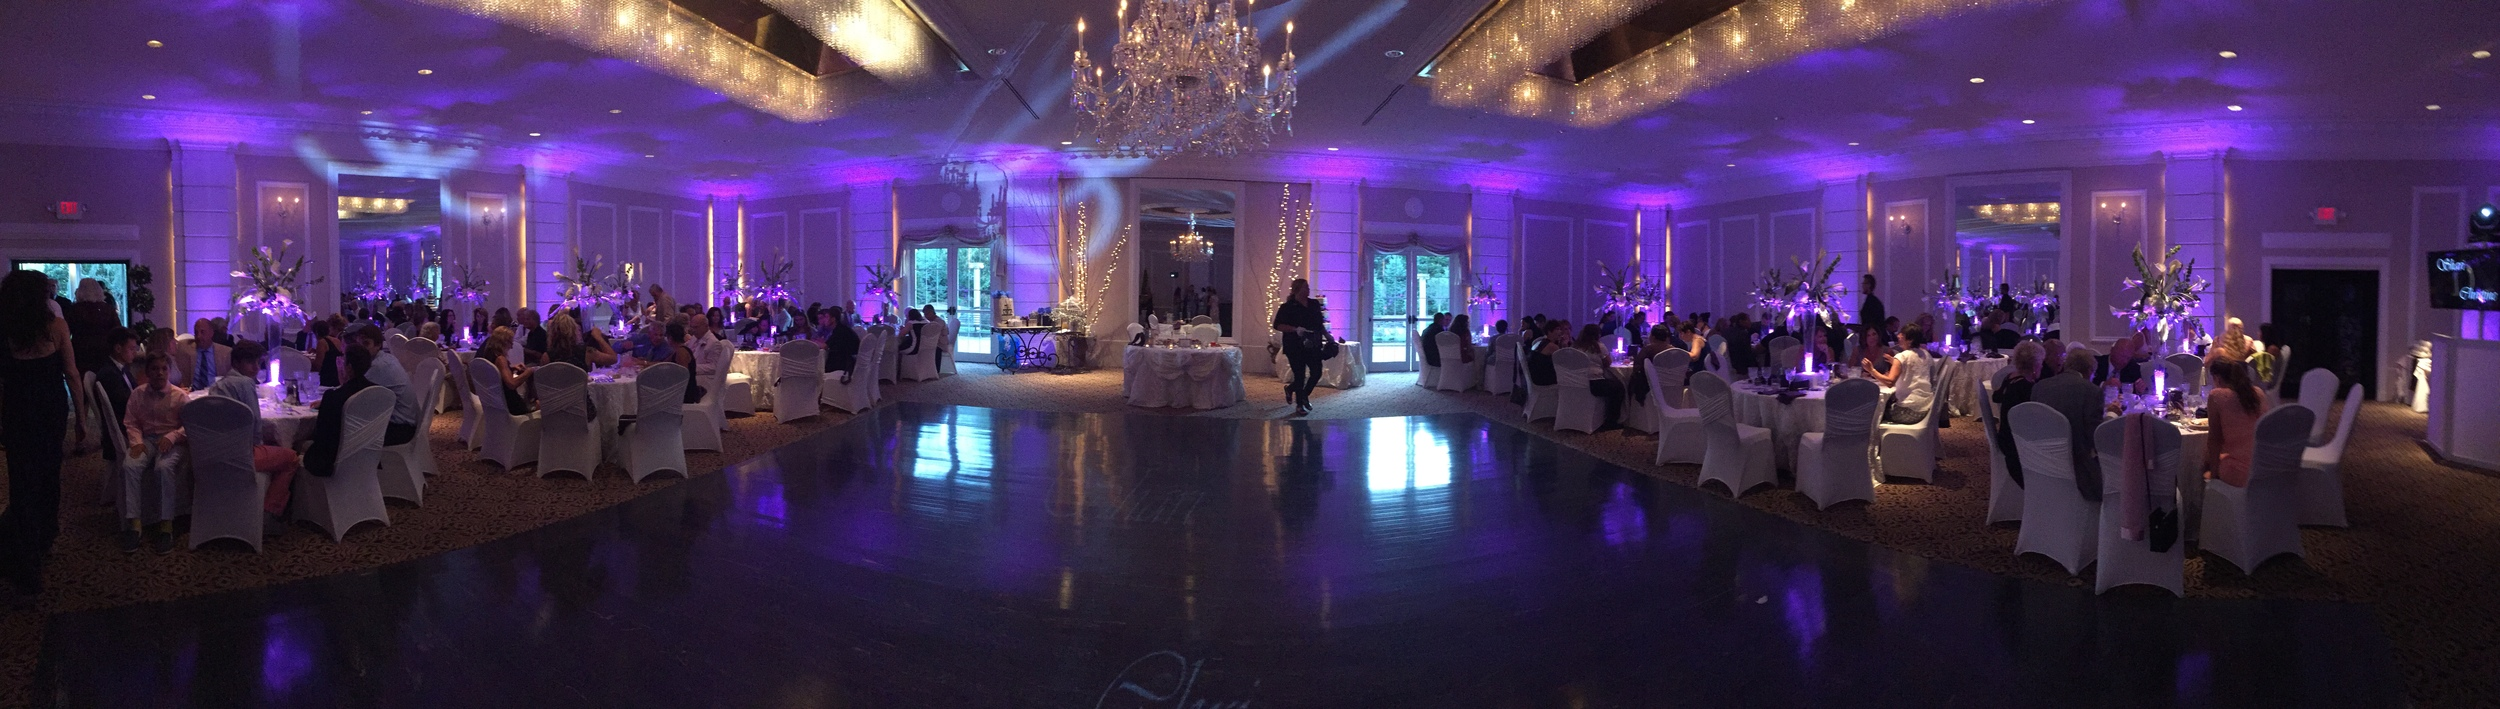 VENUES Razberrys Panoramic Uplighting.JPG